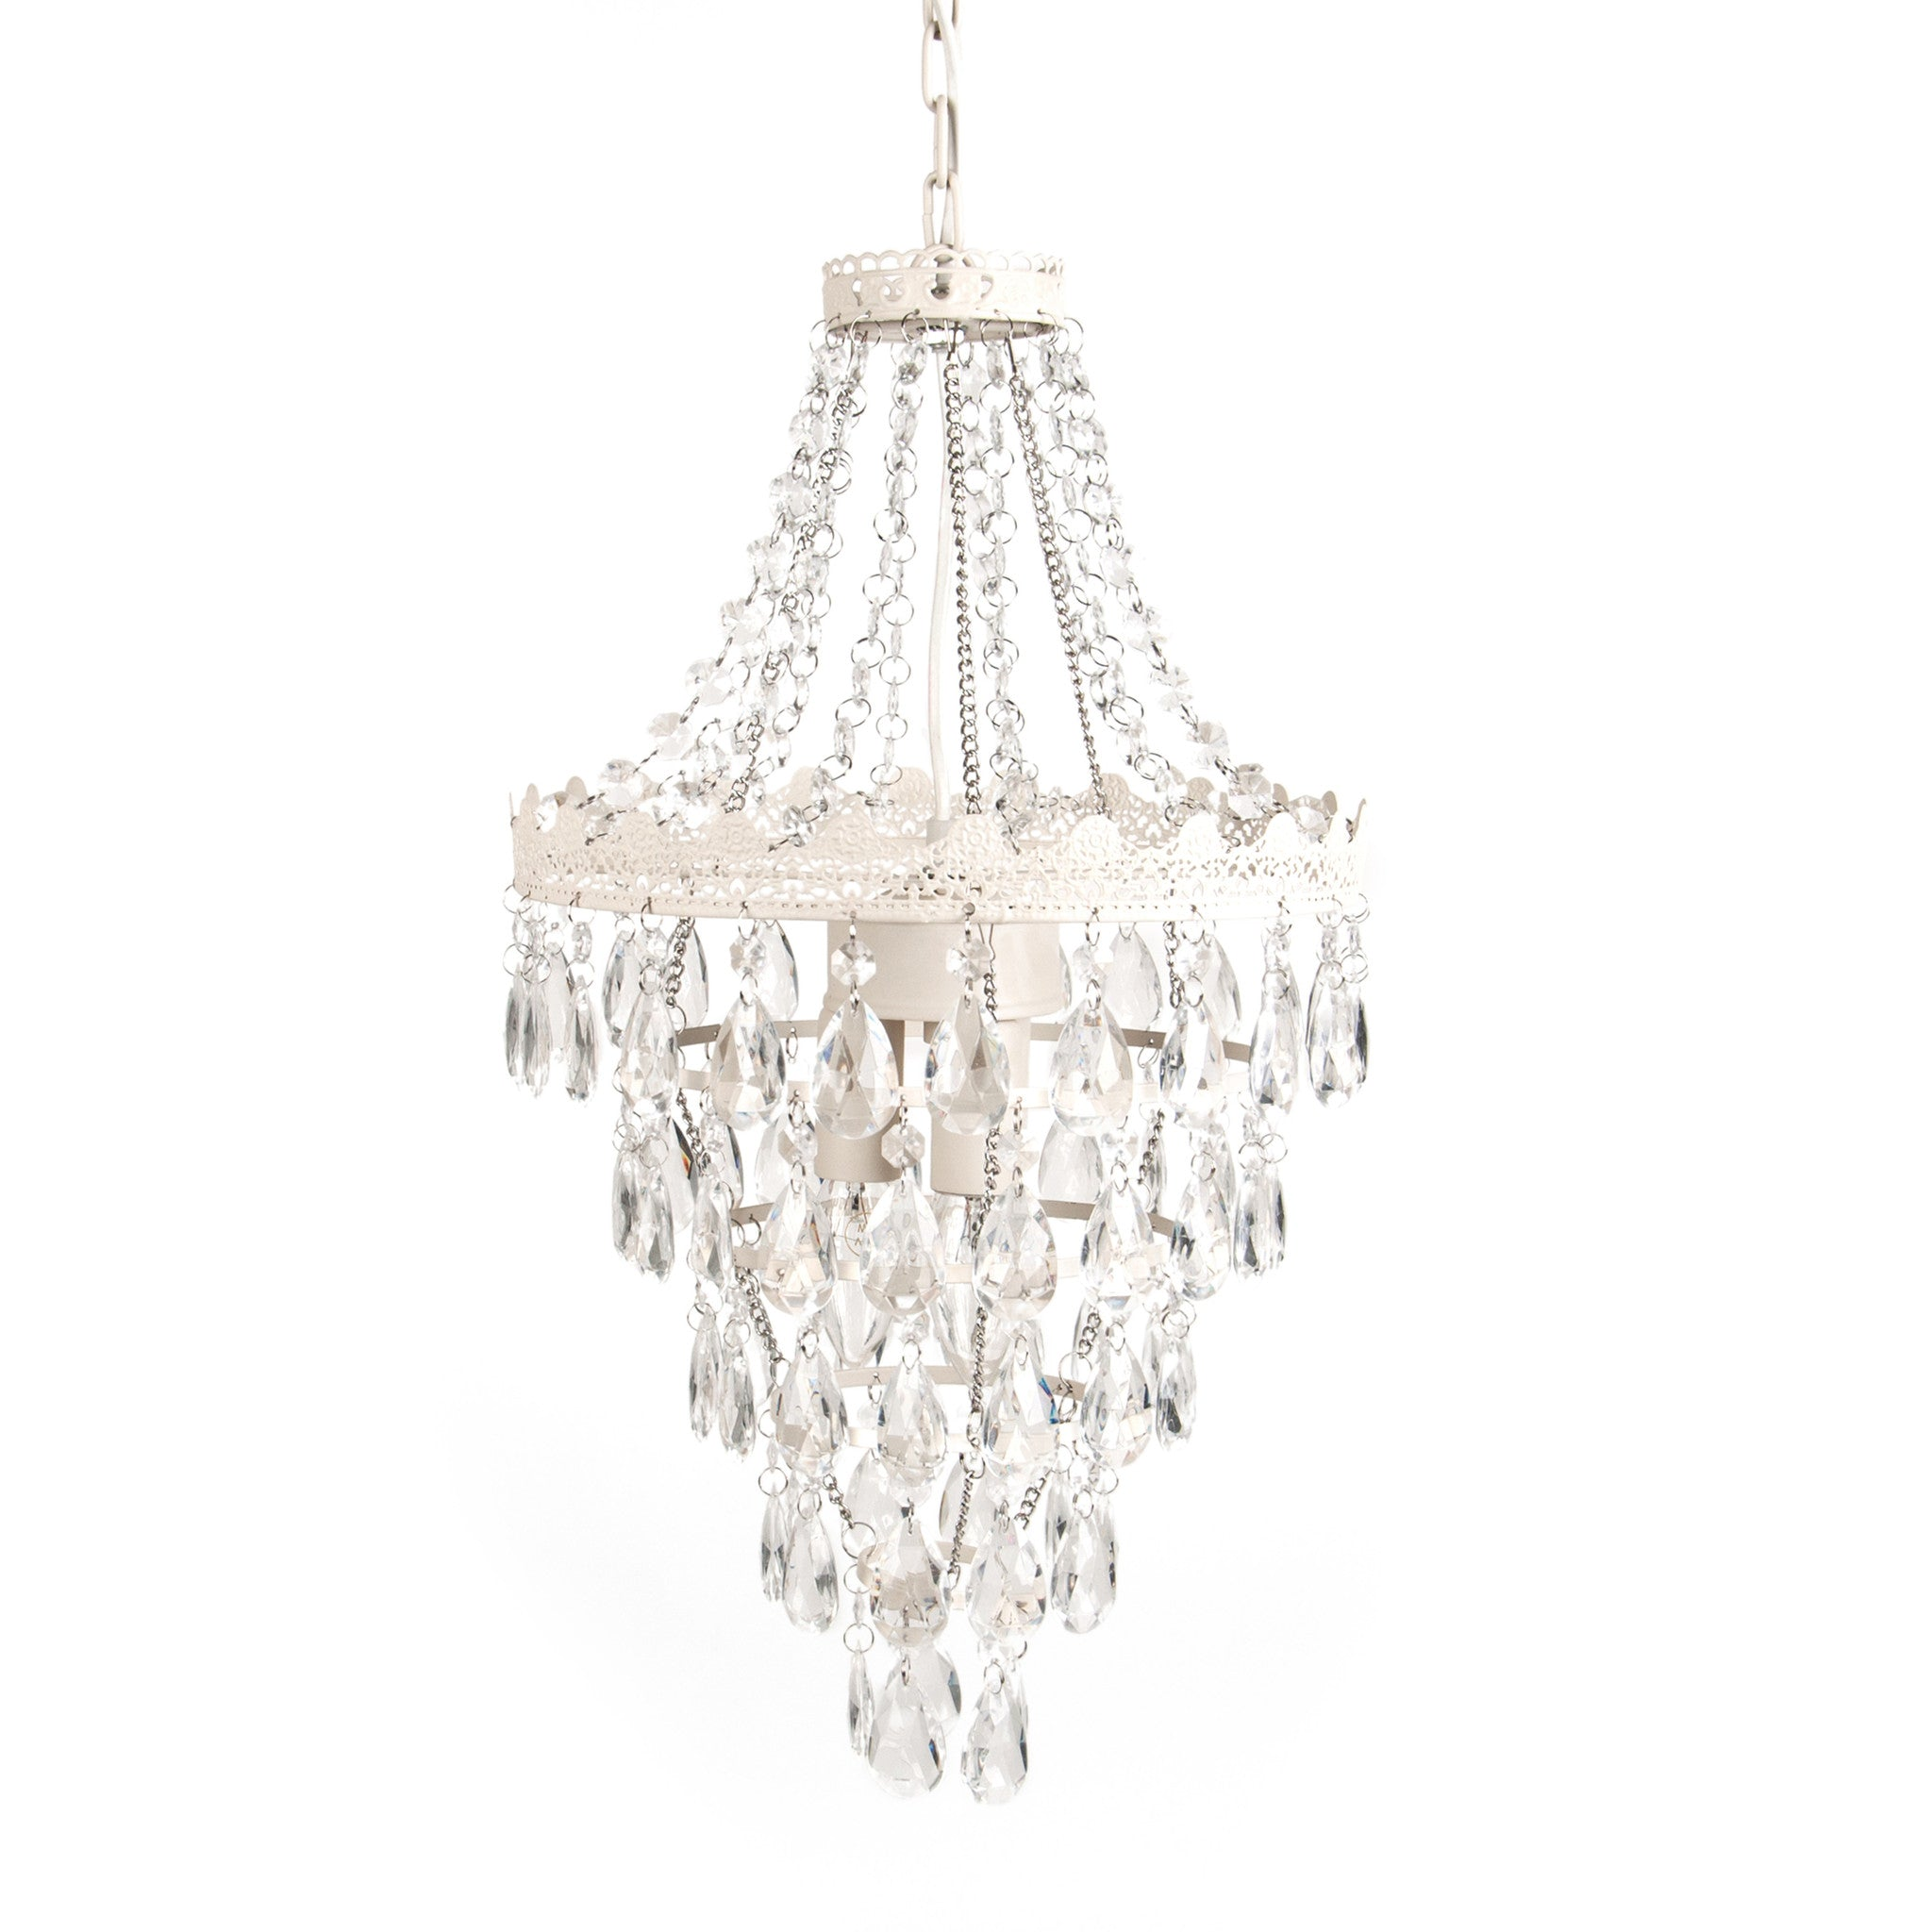 chandelier of tadpoles ideas bedrooms magnificent bedroom inside chandeliers image collection white small best on for